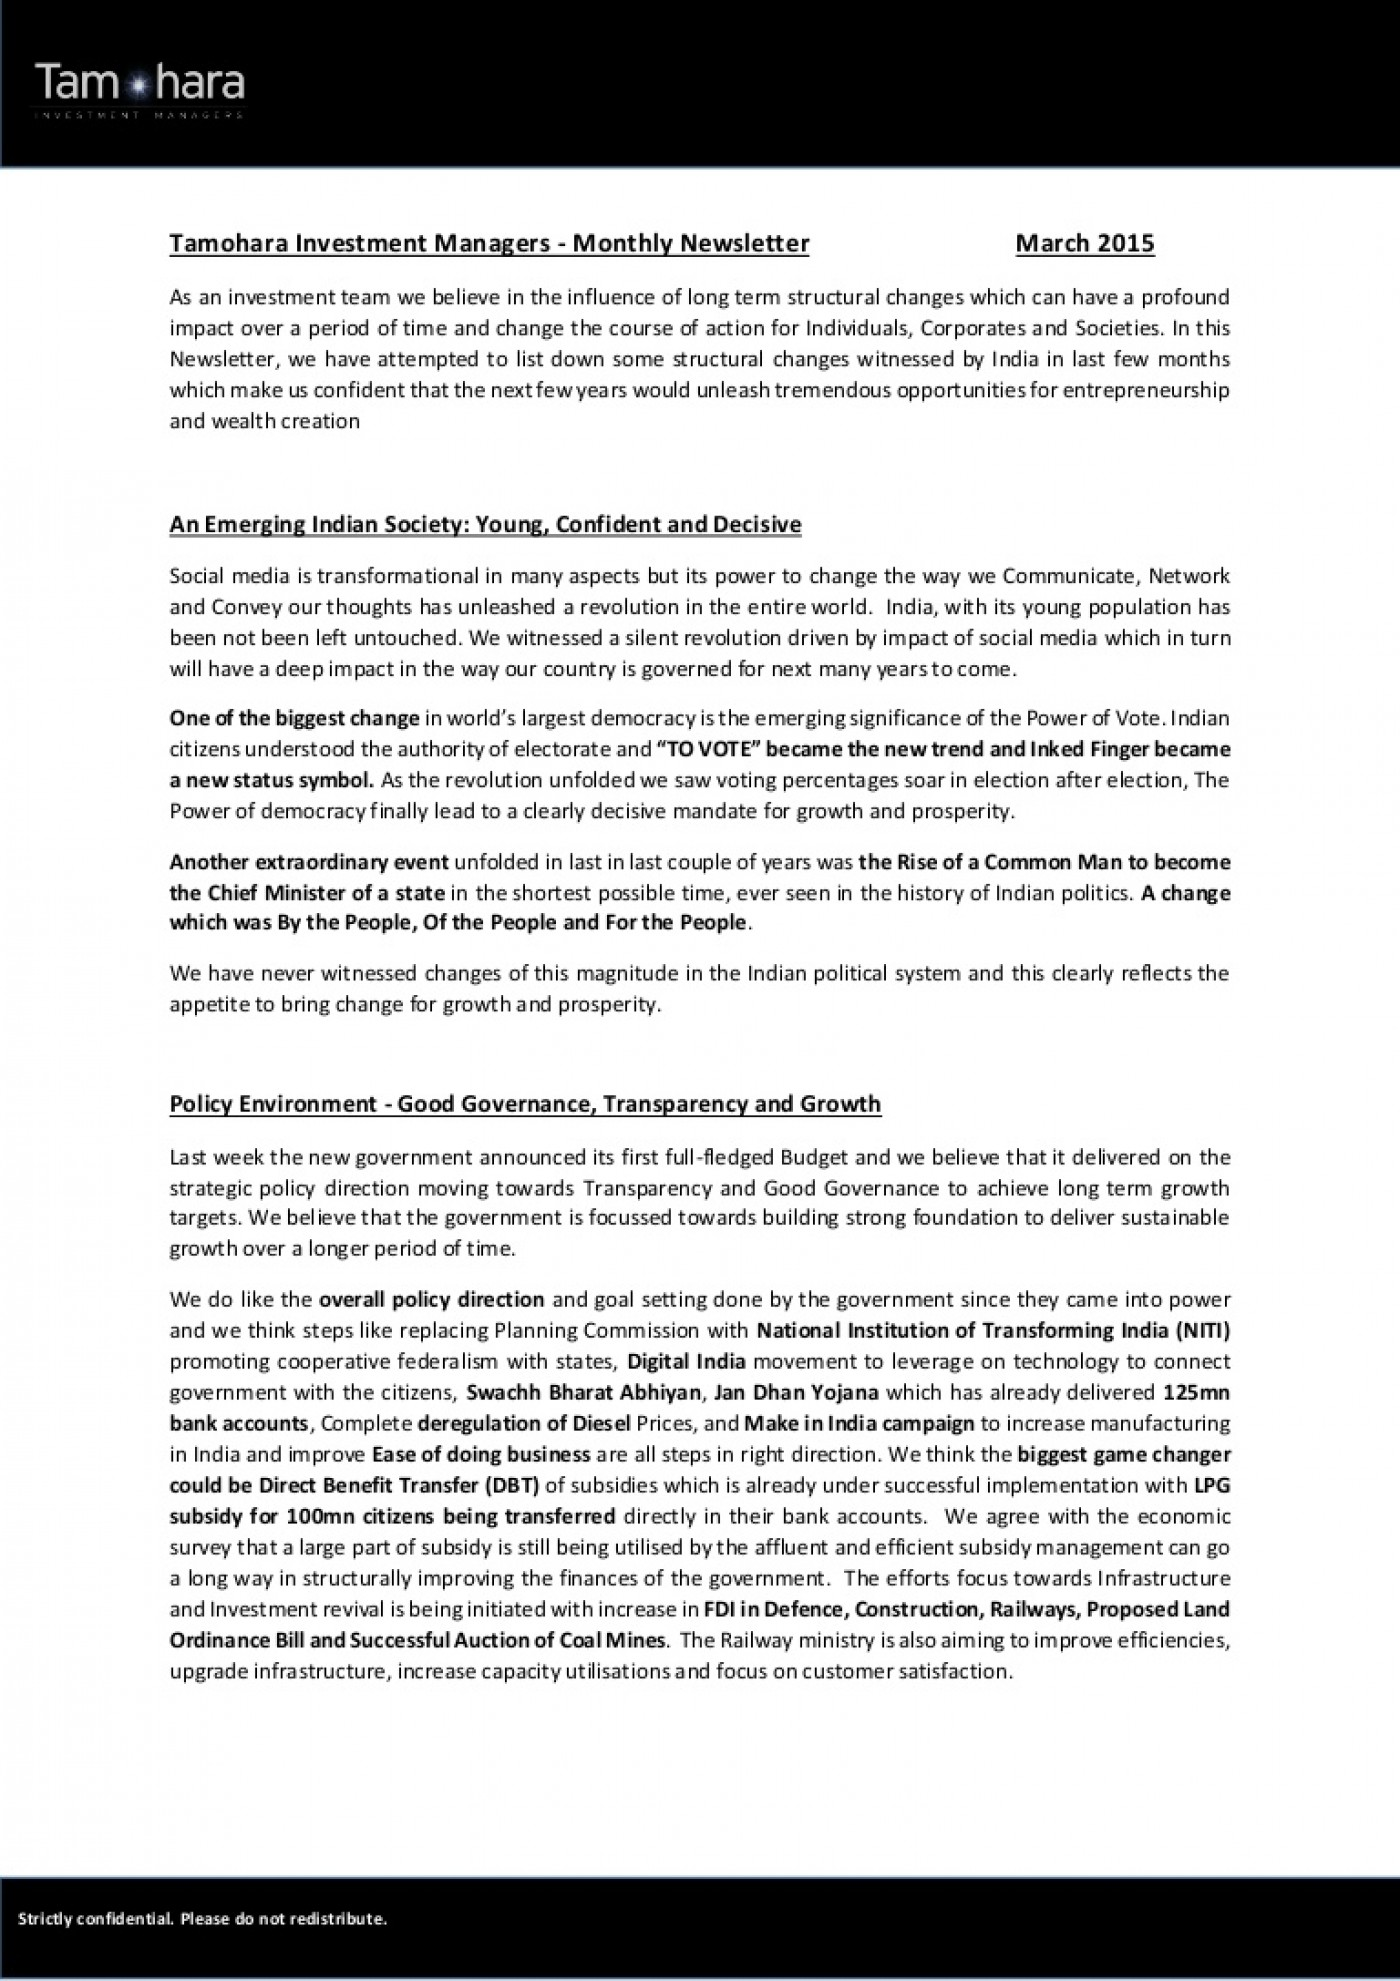 013 Essay Example Tamoharainvestmentnewsletter Mar2015 Conversion Gate01 Thumbnail How To Make Outstanding A Longer An Period Trick Mac On Google Docs My Generator 1400